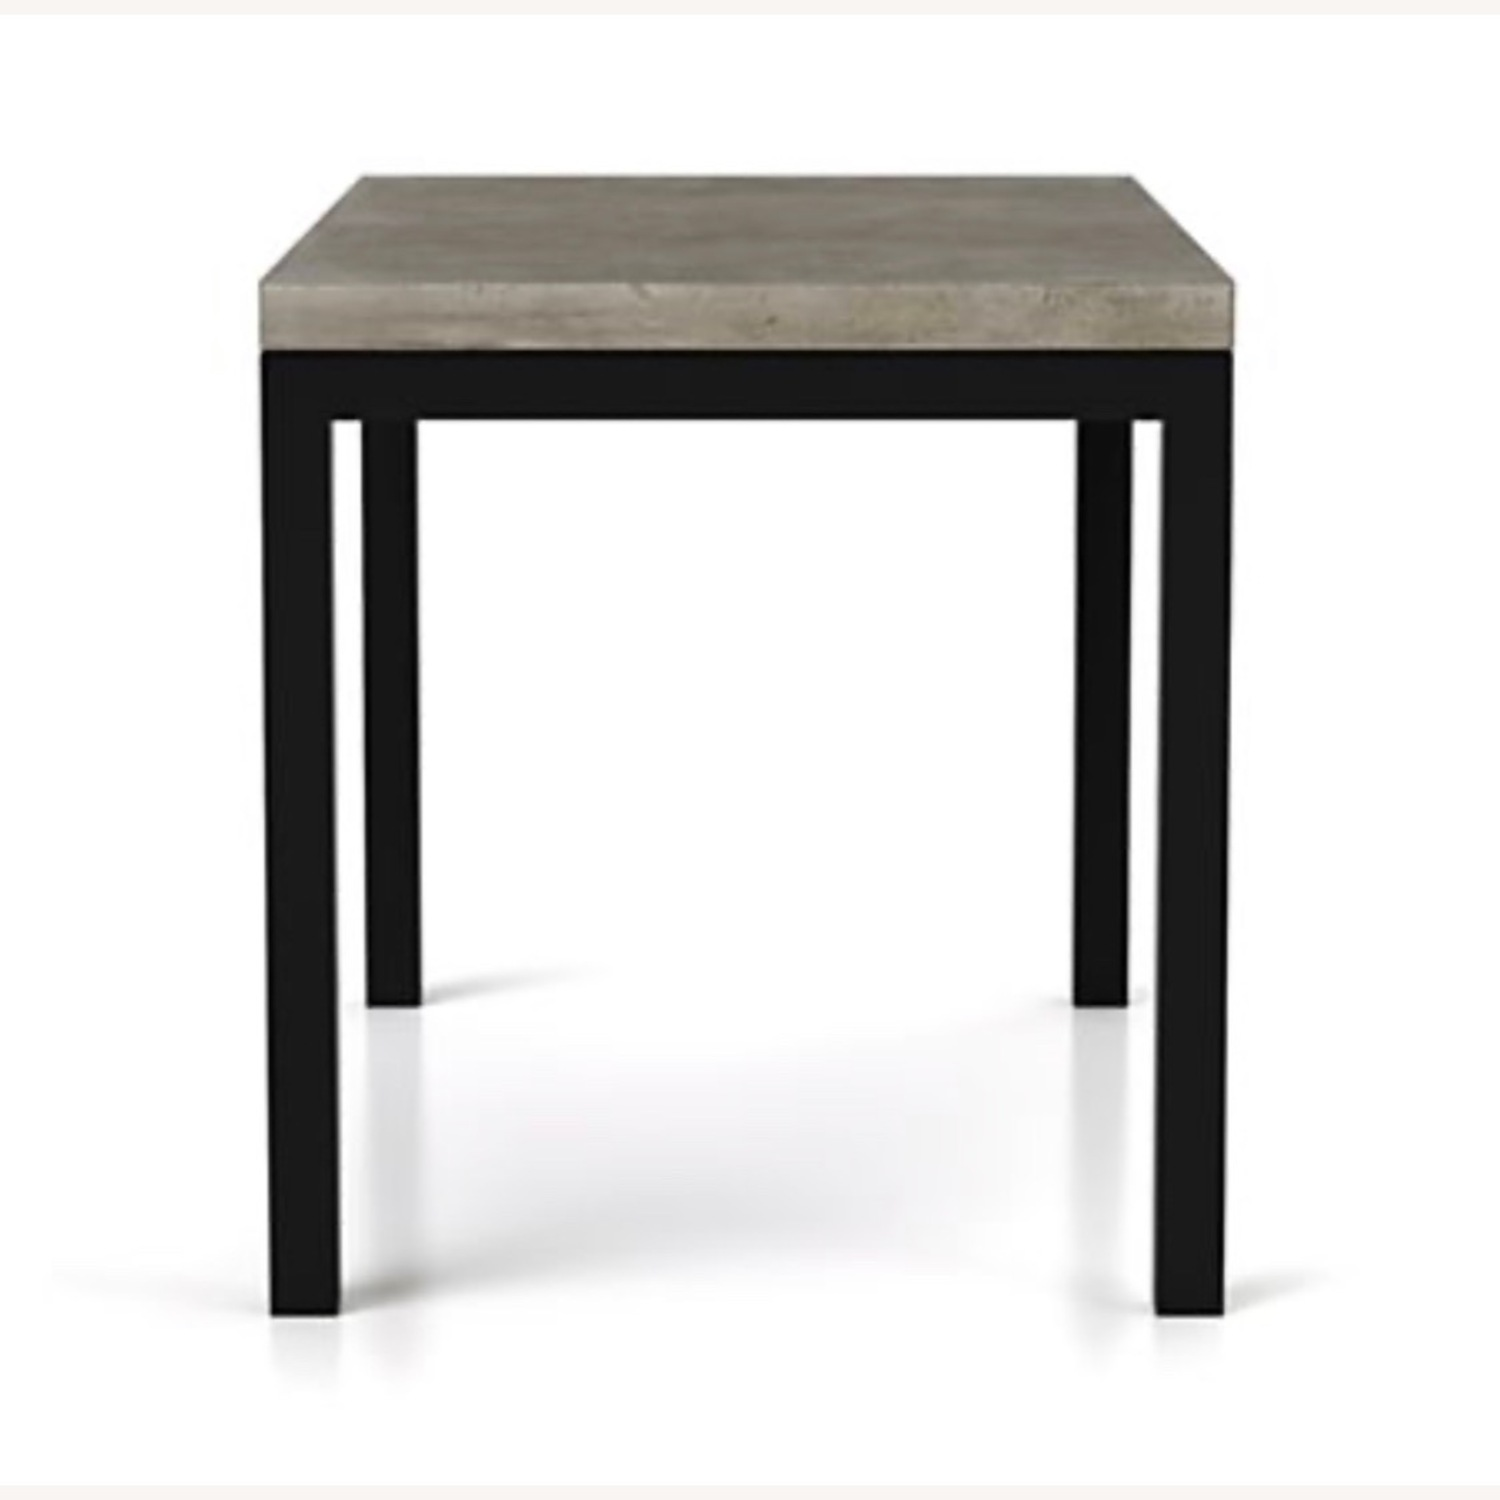 Crate & Barrel 2 Concrete Dining Tables - image-16